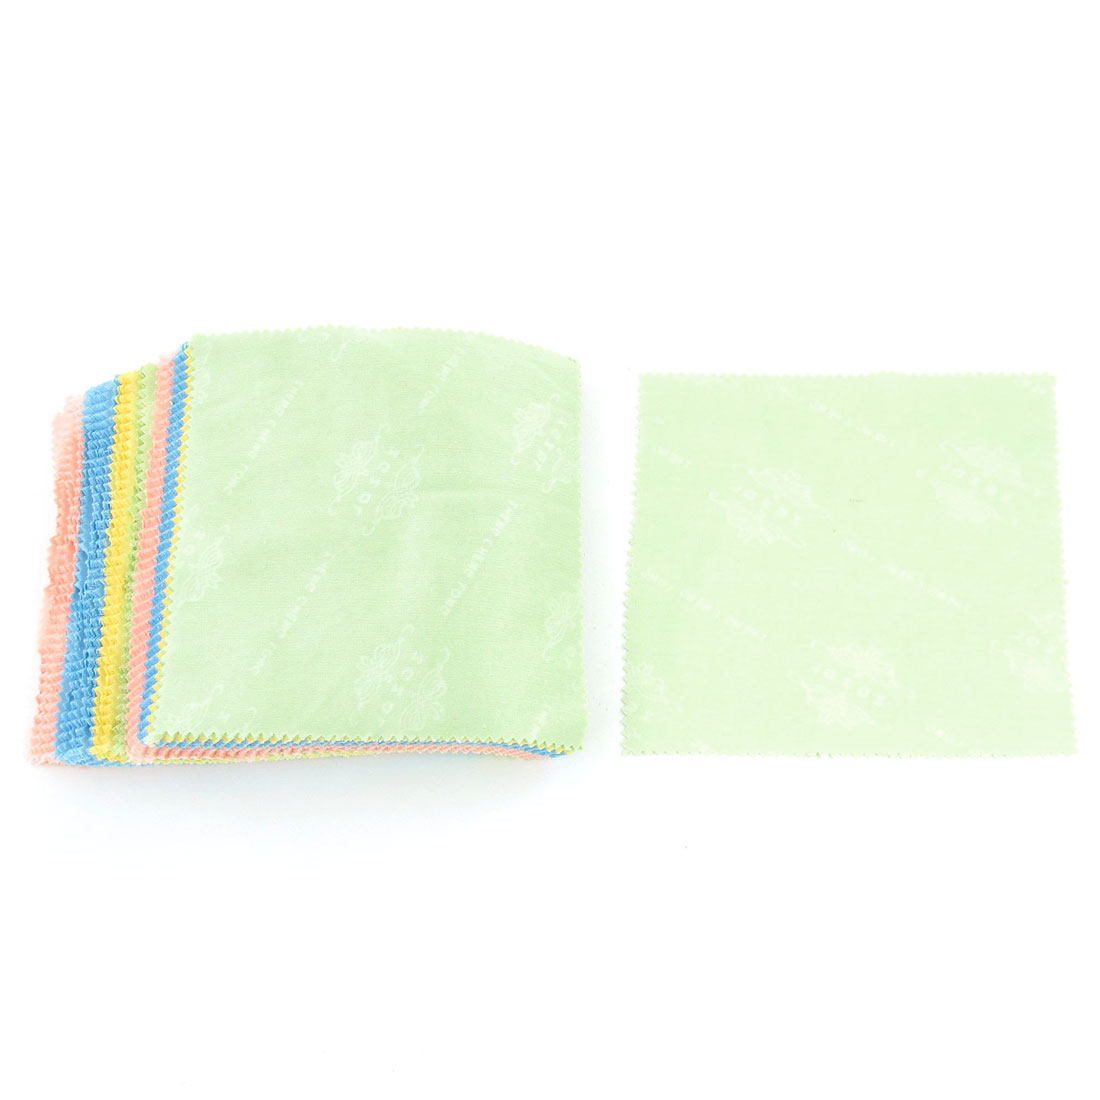 100 Pcs Colorful Square Dustless Sunglass Glasses Lens Cleaning Cloth